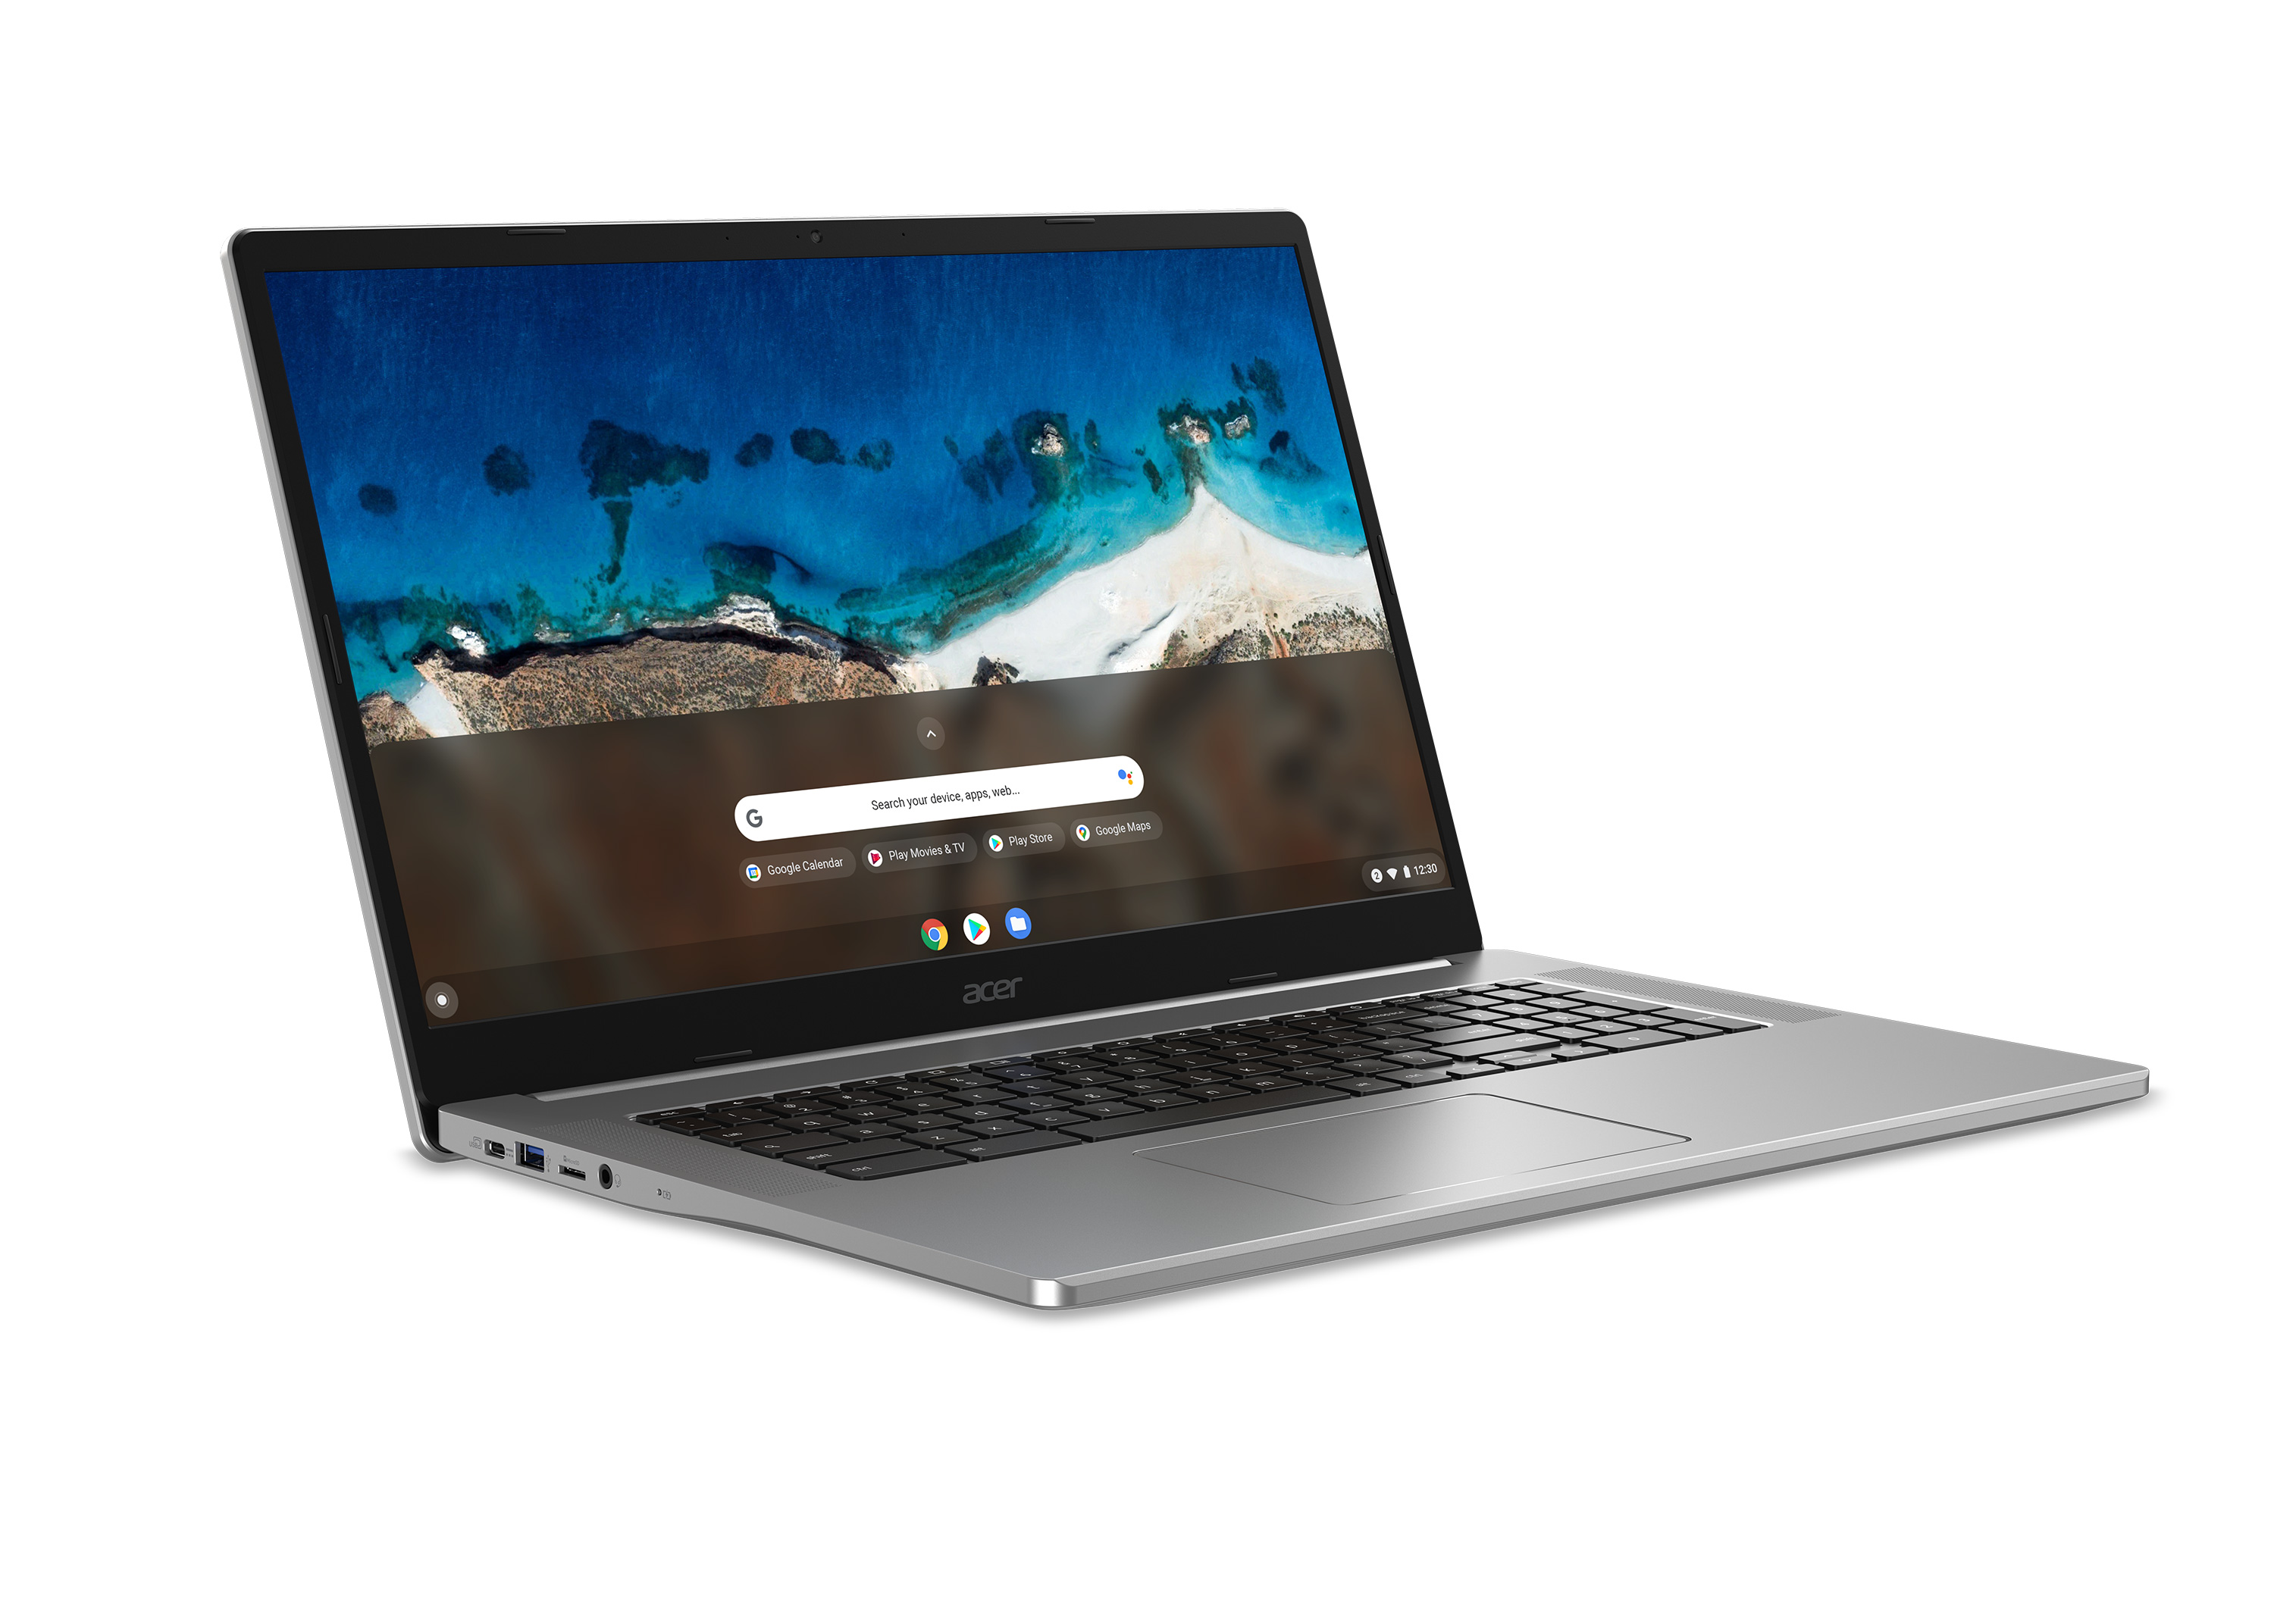 Acer is the first to release a 17-inch Chromebook, which goes on sale from June 2021